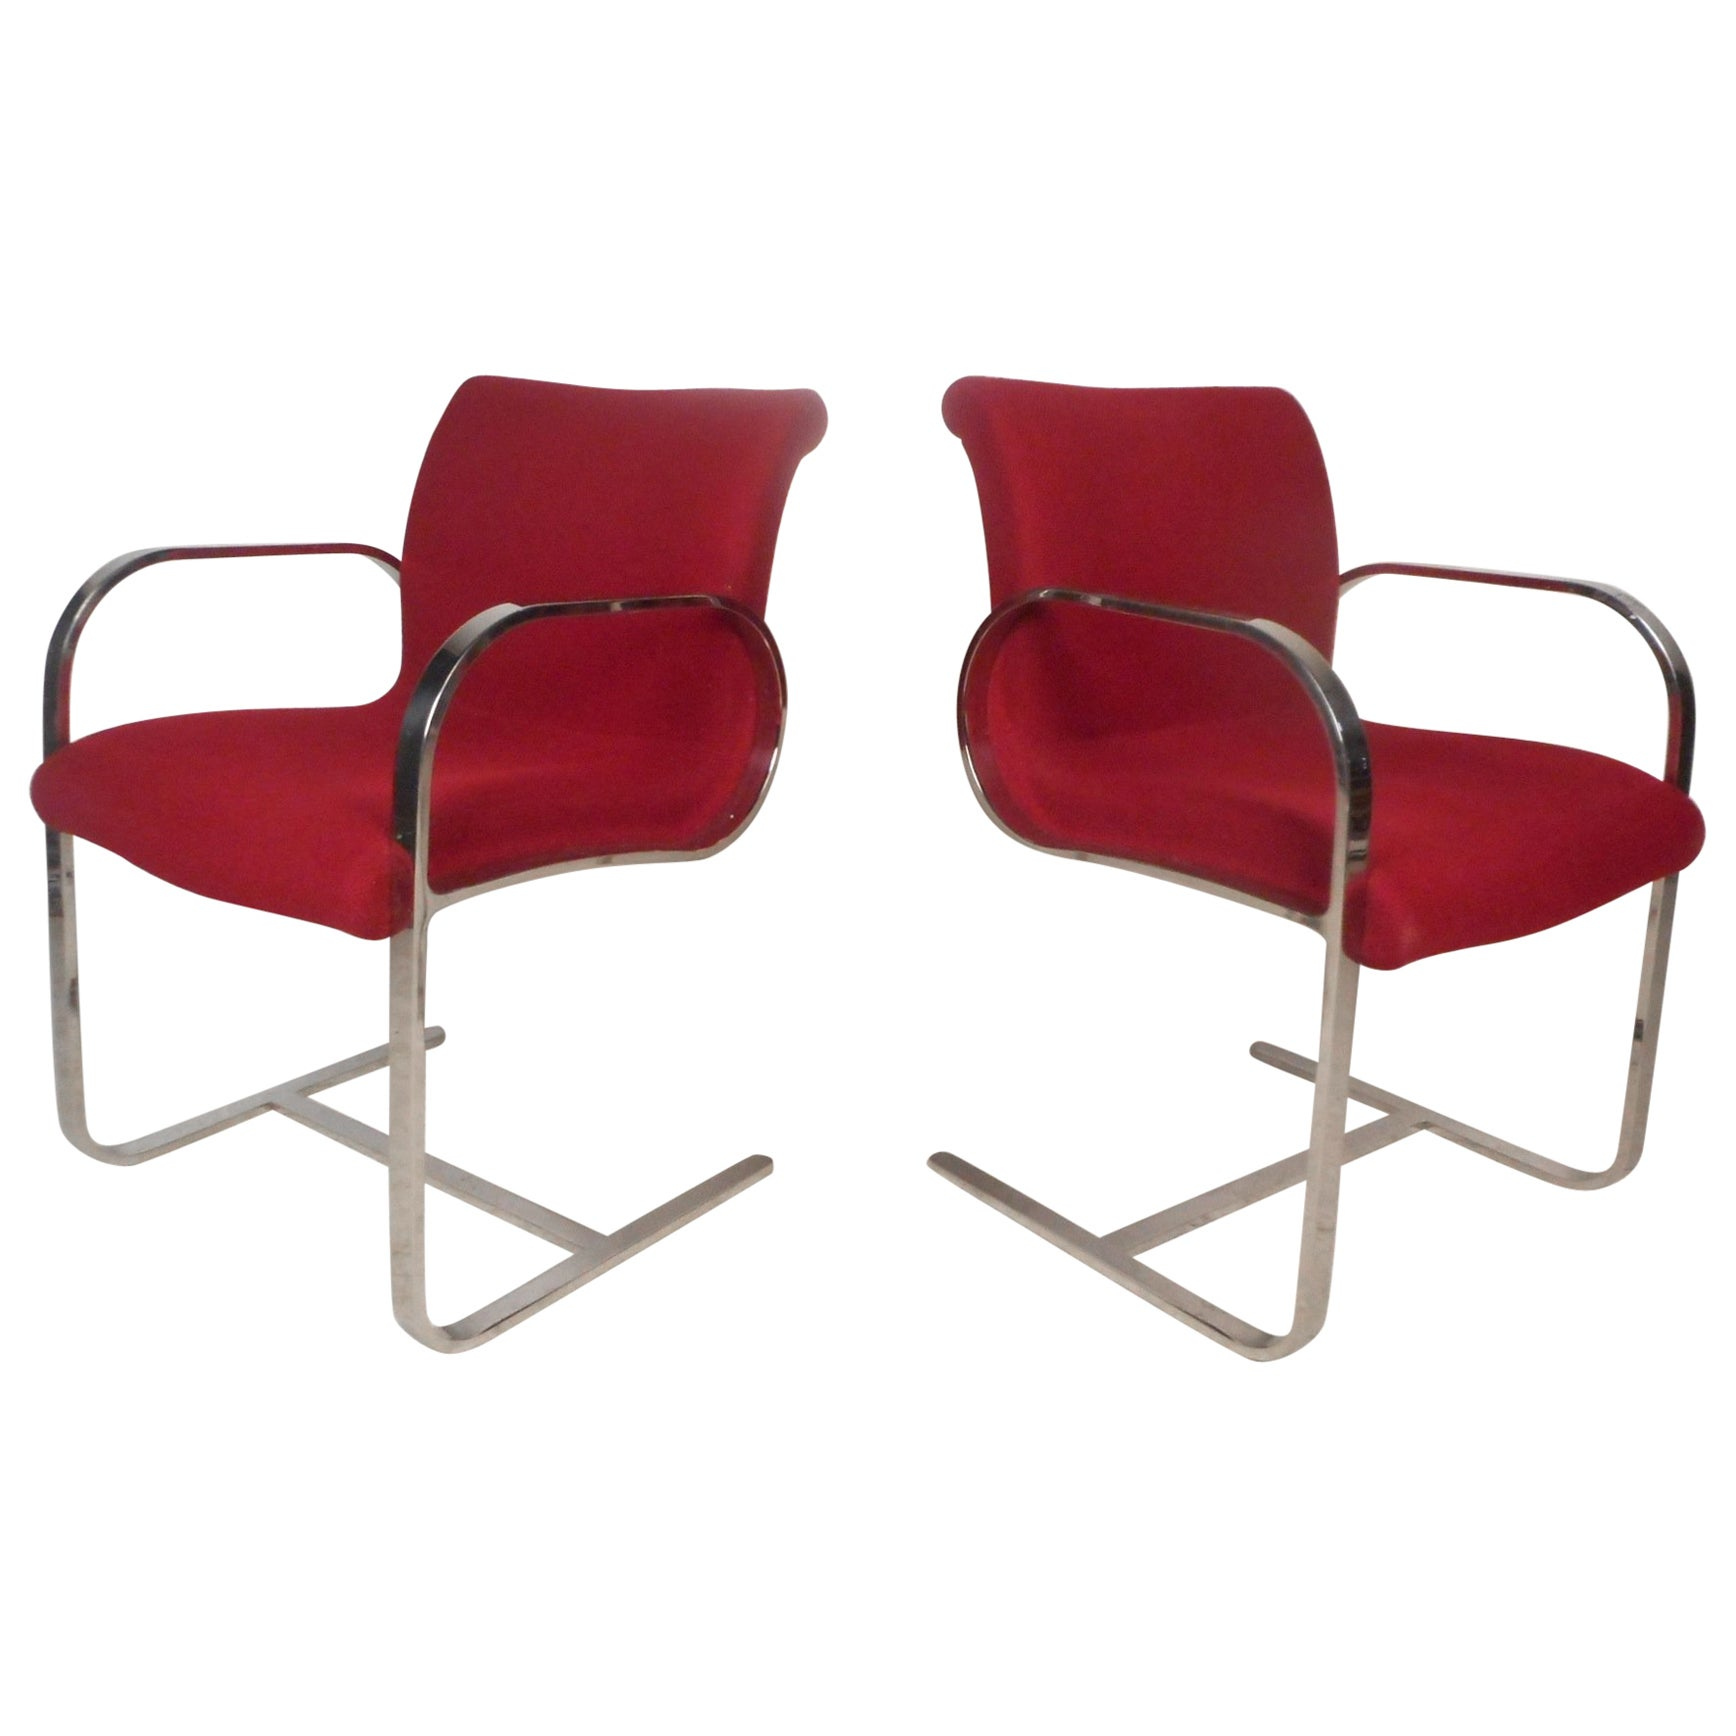 Pair of Midcentury Cantilever Armchairs